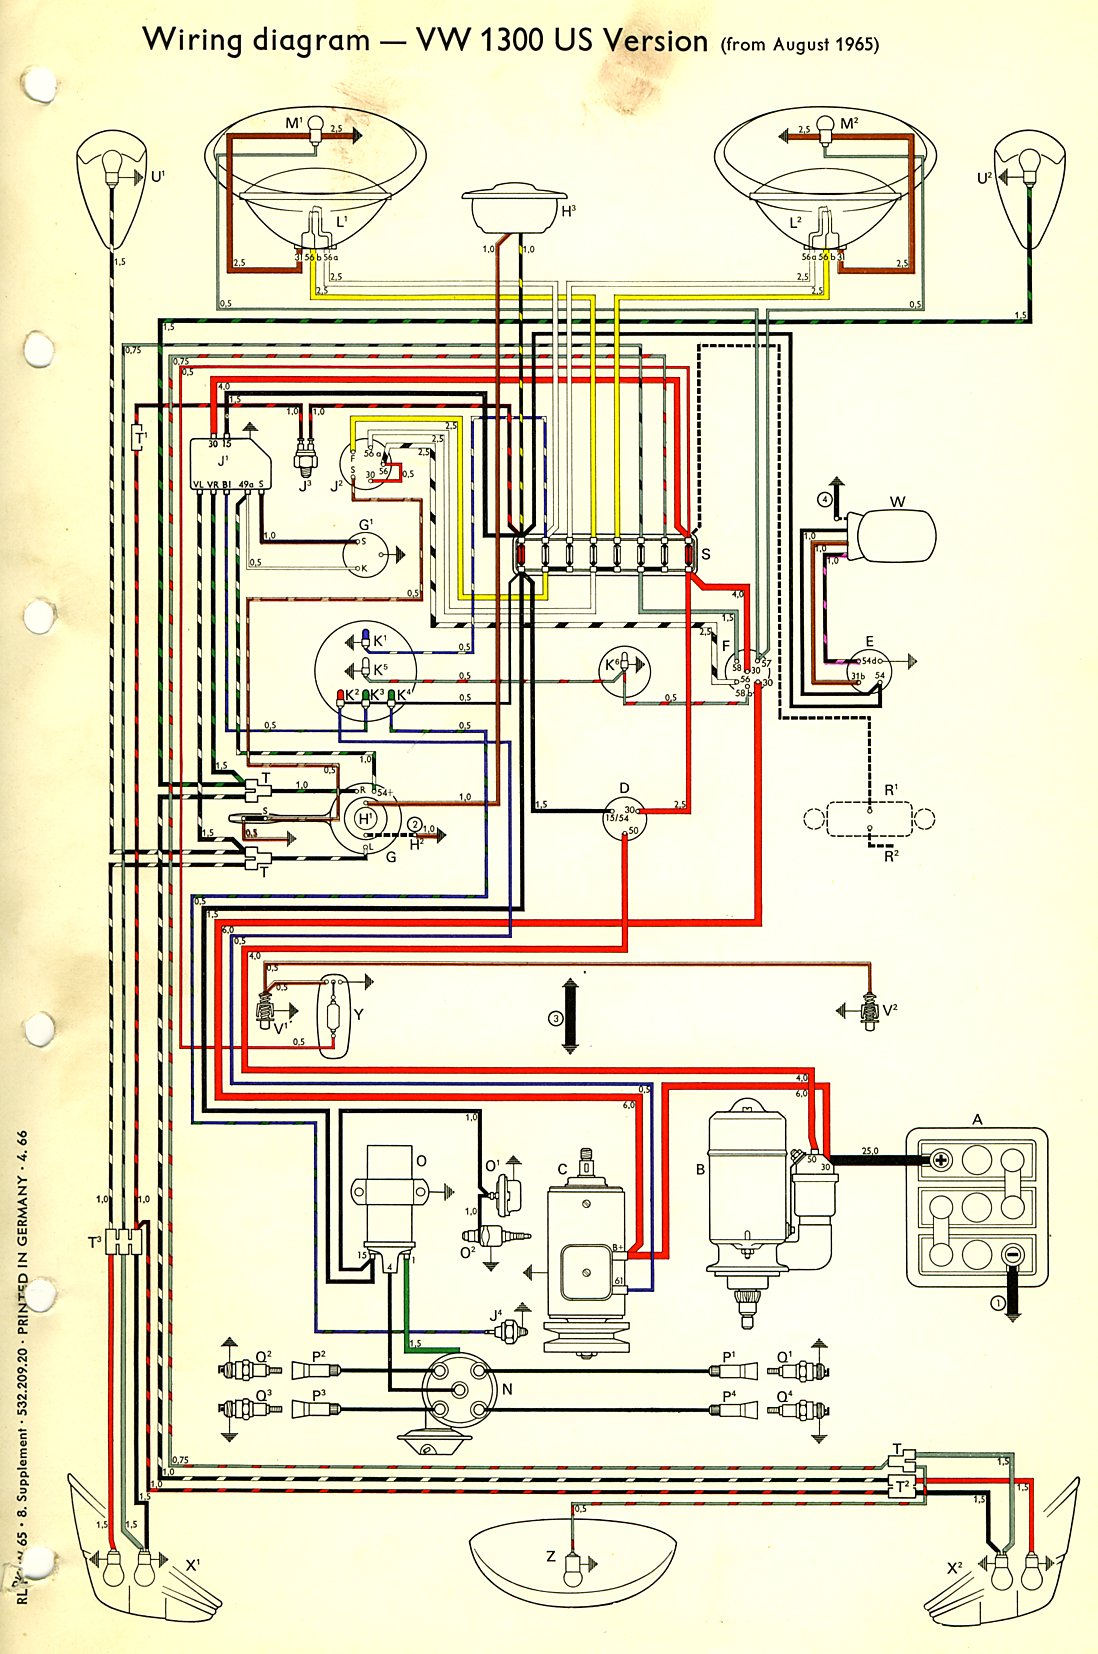 bug_66_USA thesamba com type 1 wiring diagrams Basic Electrical Wiring Diagrams at edmiracle.co